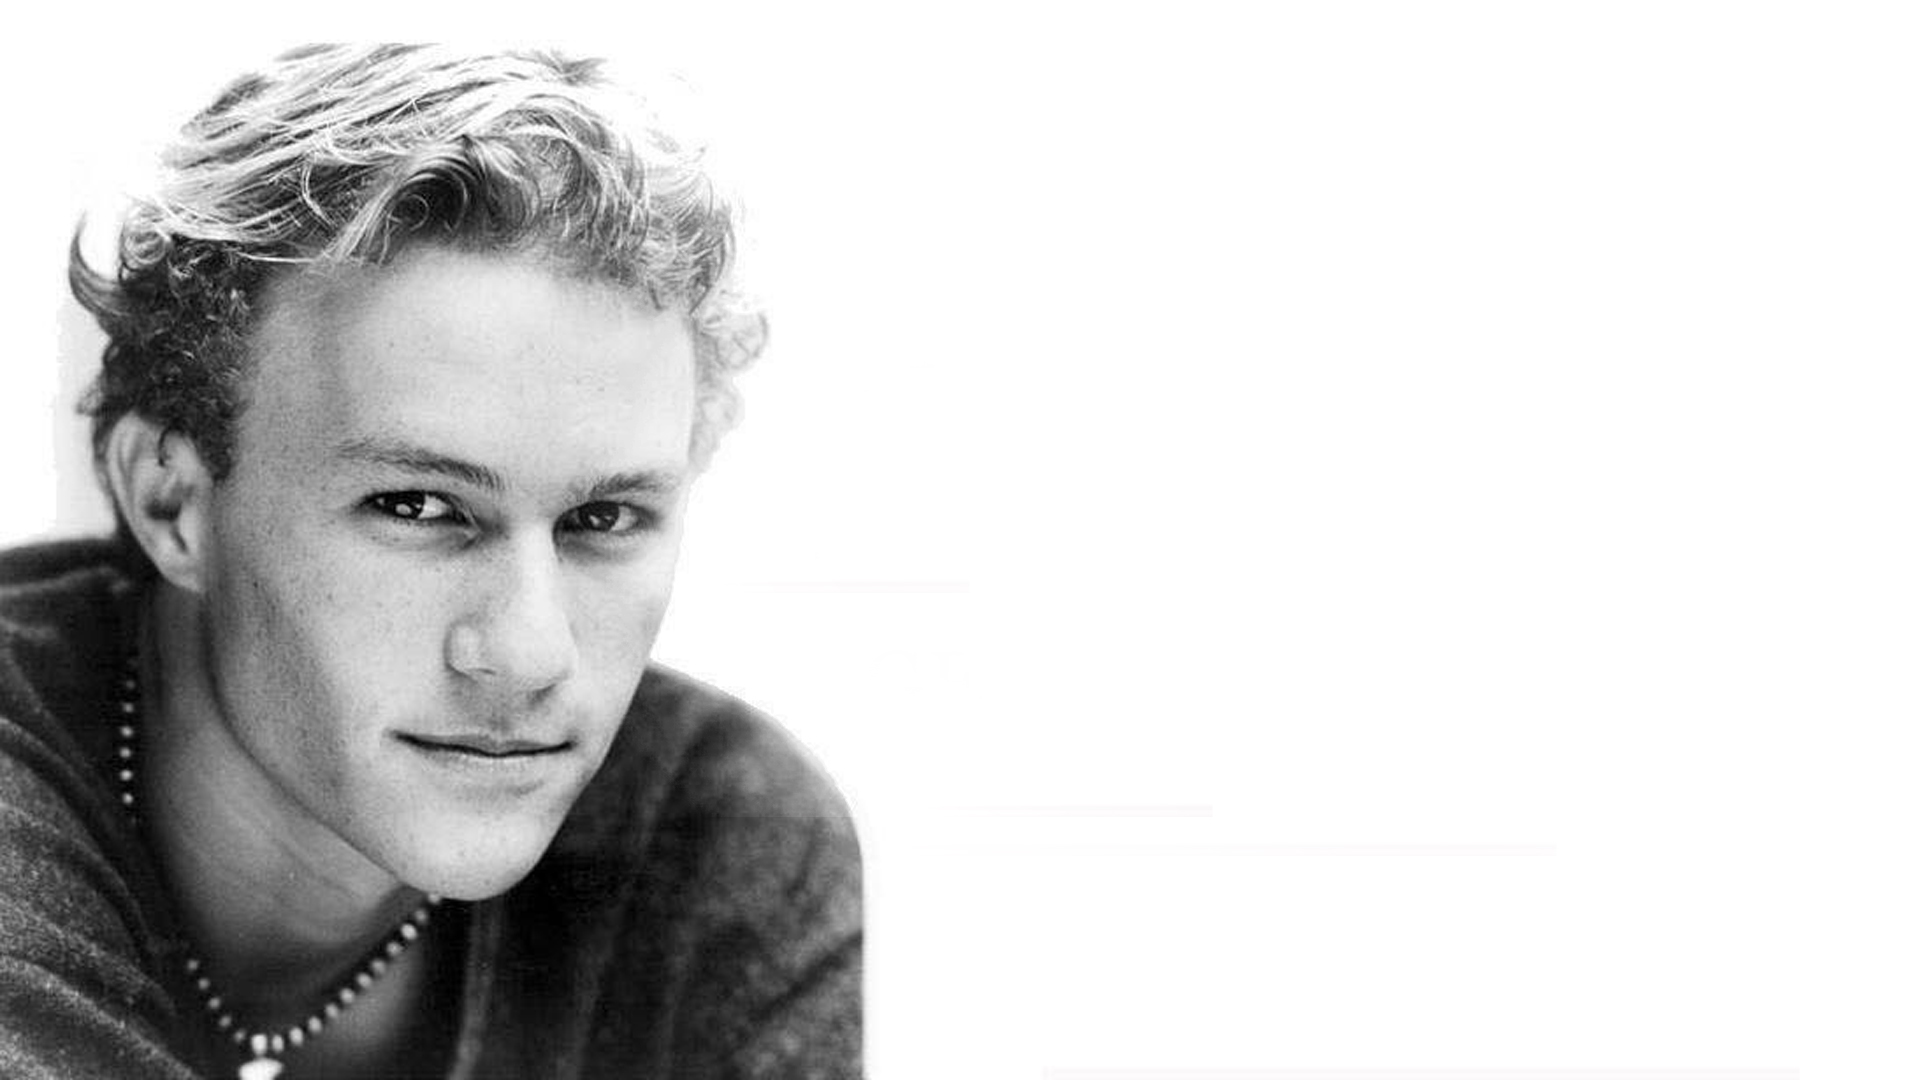 Wallpapers Heath Ledger Galleries Heath Ledger Pics Heath Ledger 1920x1080